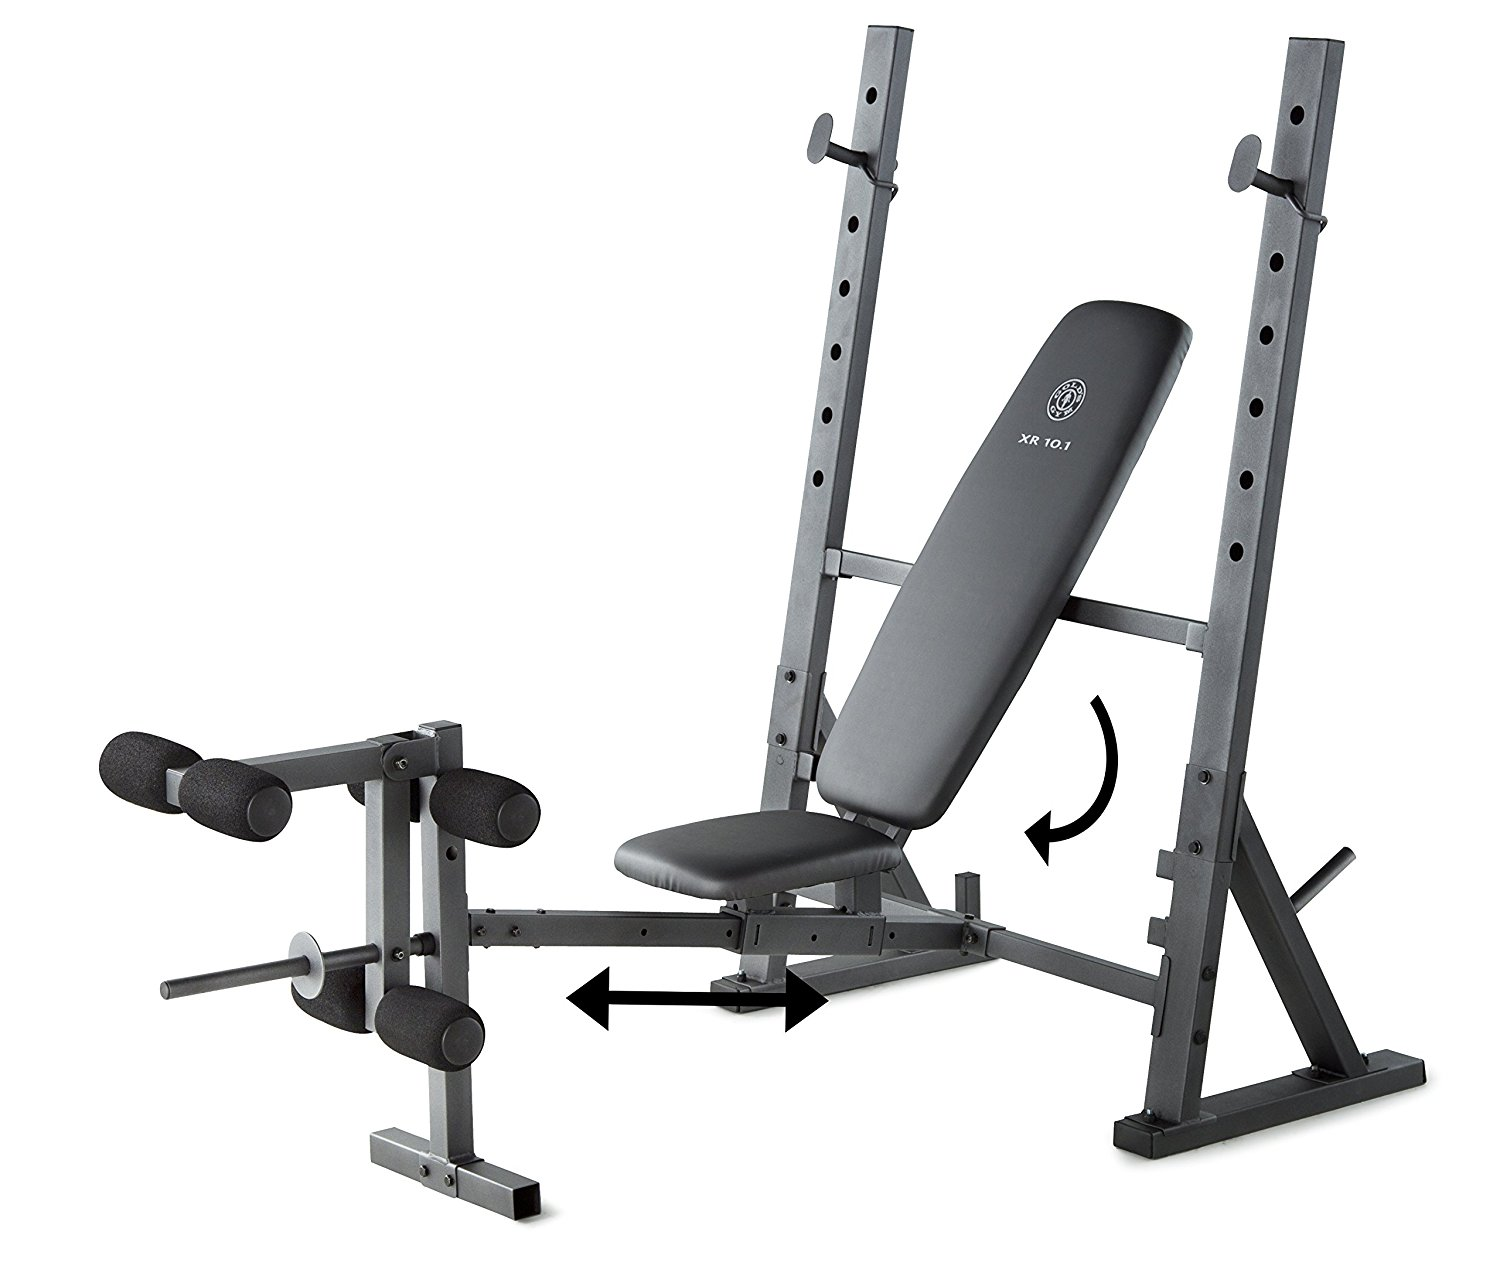 Craigslist Weight Bench | Weight Set and Bench | Craigslist Houston Exercise Equipment